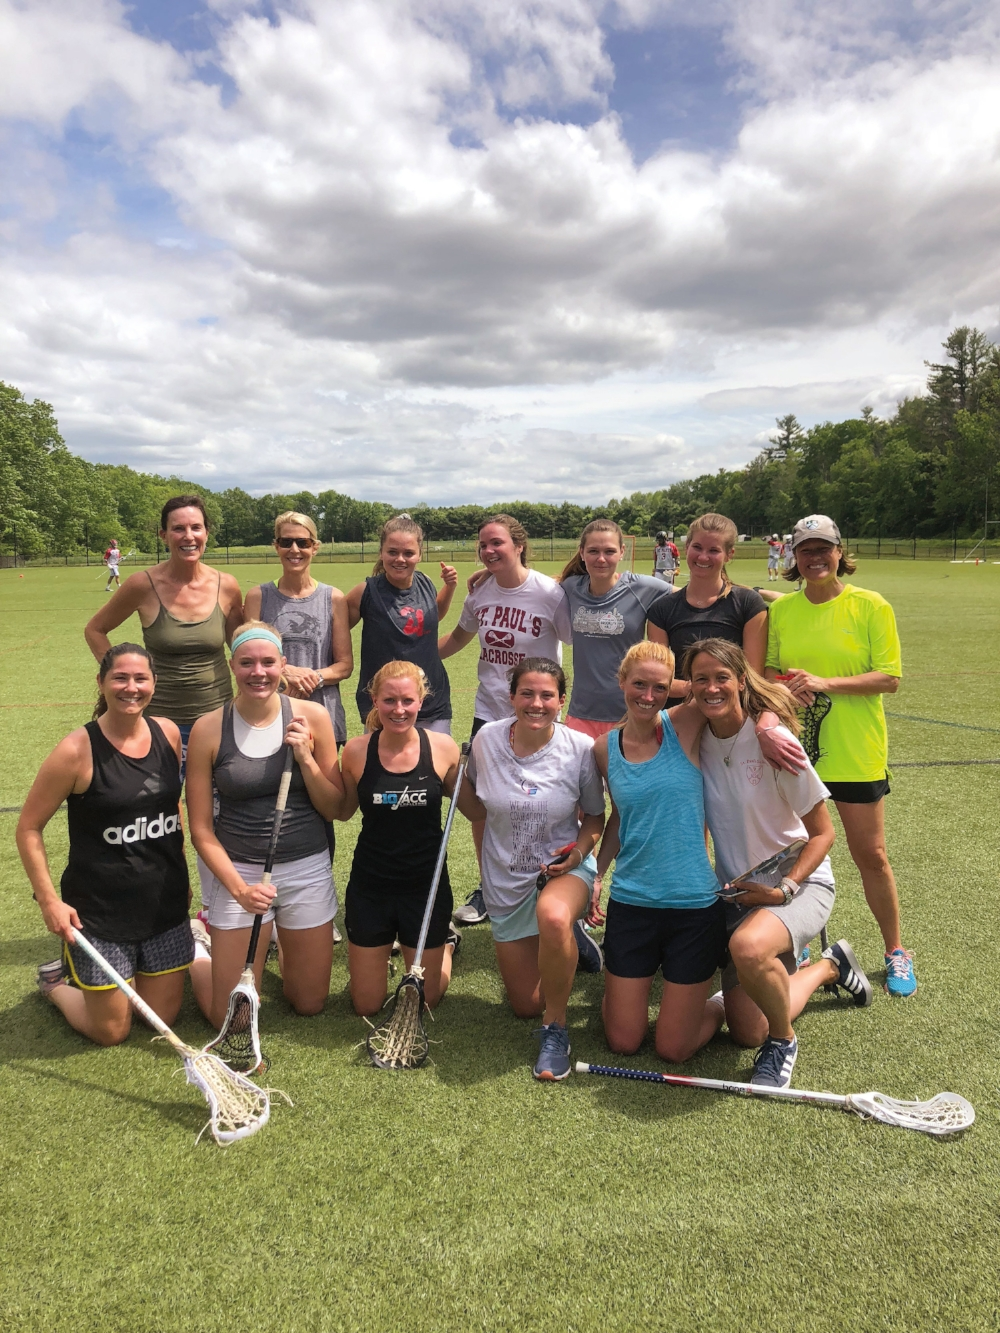 PARTICIPANTS: Meg Ford '03, Cynthia Day '85, Charlotte Ward '13, Julia Reiley '13, Finley Frechette '17, Tyra Clemmenson '10, Michaela O'Connor '13, Lisa Hughes '78, Lisa Kent Nitze '78, Emily Bresnahan '13, Hannah Hirsch-feld '14, Ashley Crutchfield '08, and coach Heather Crutchfield.